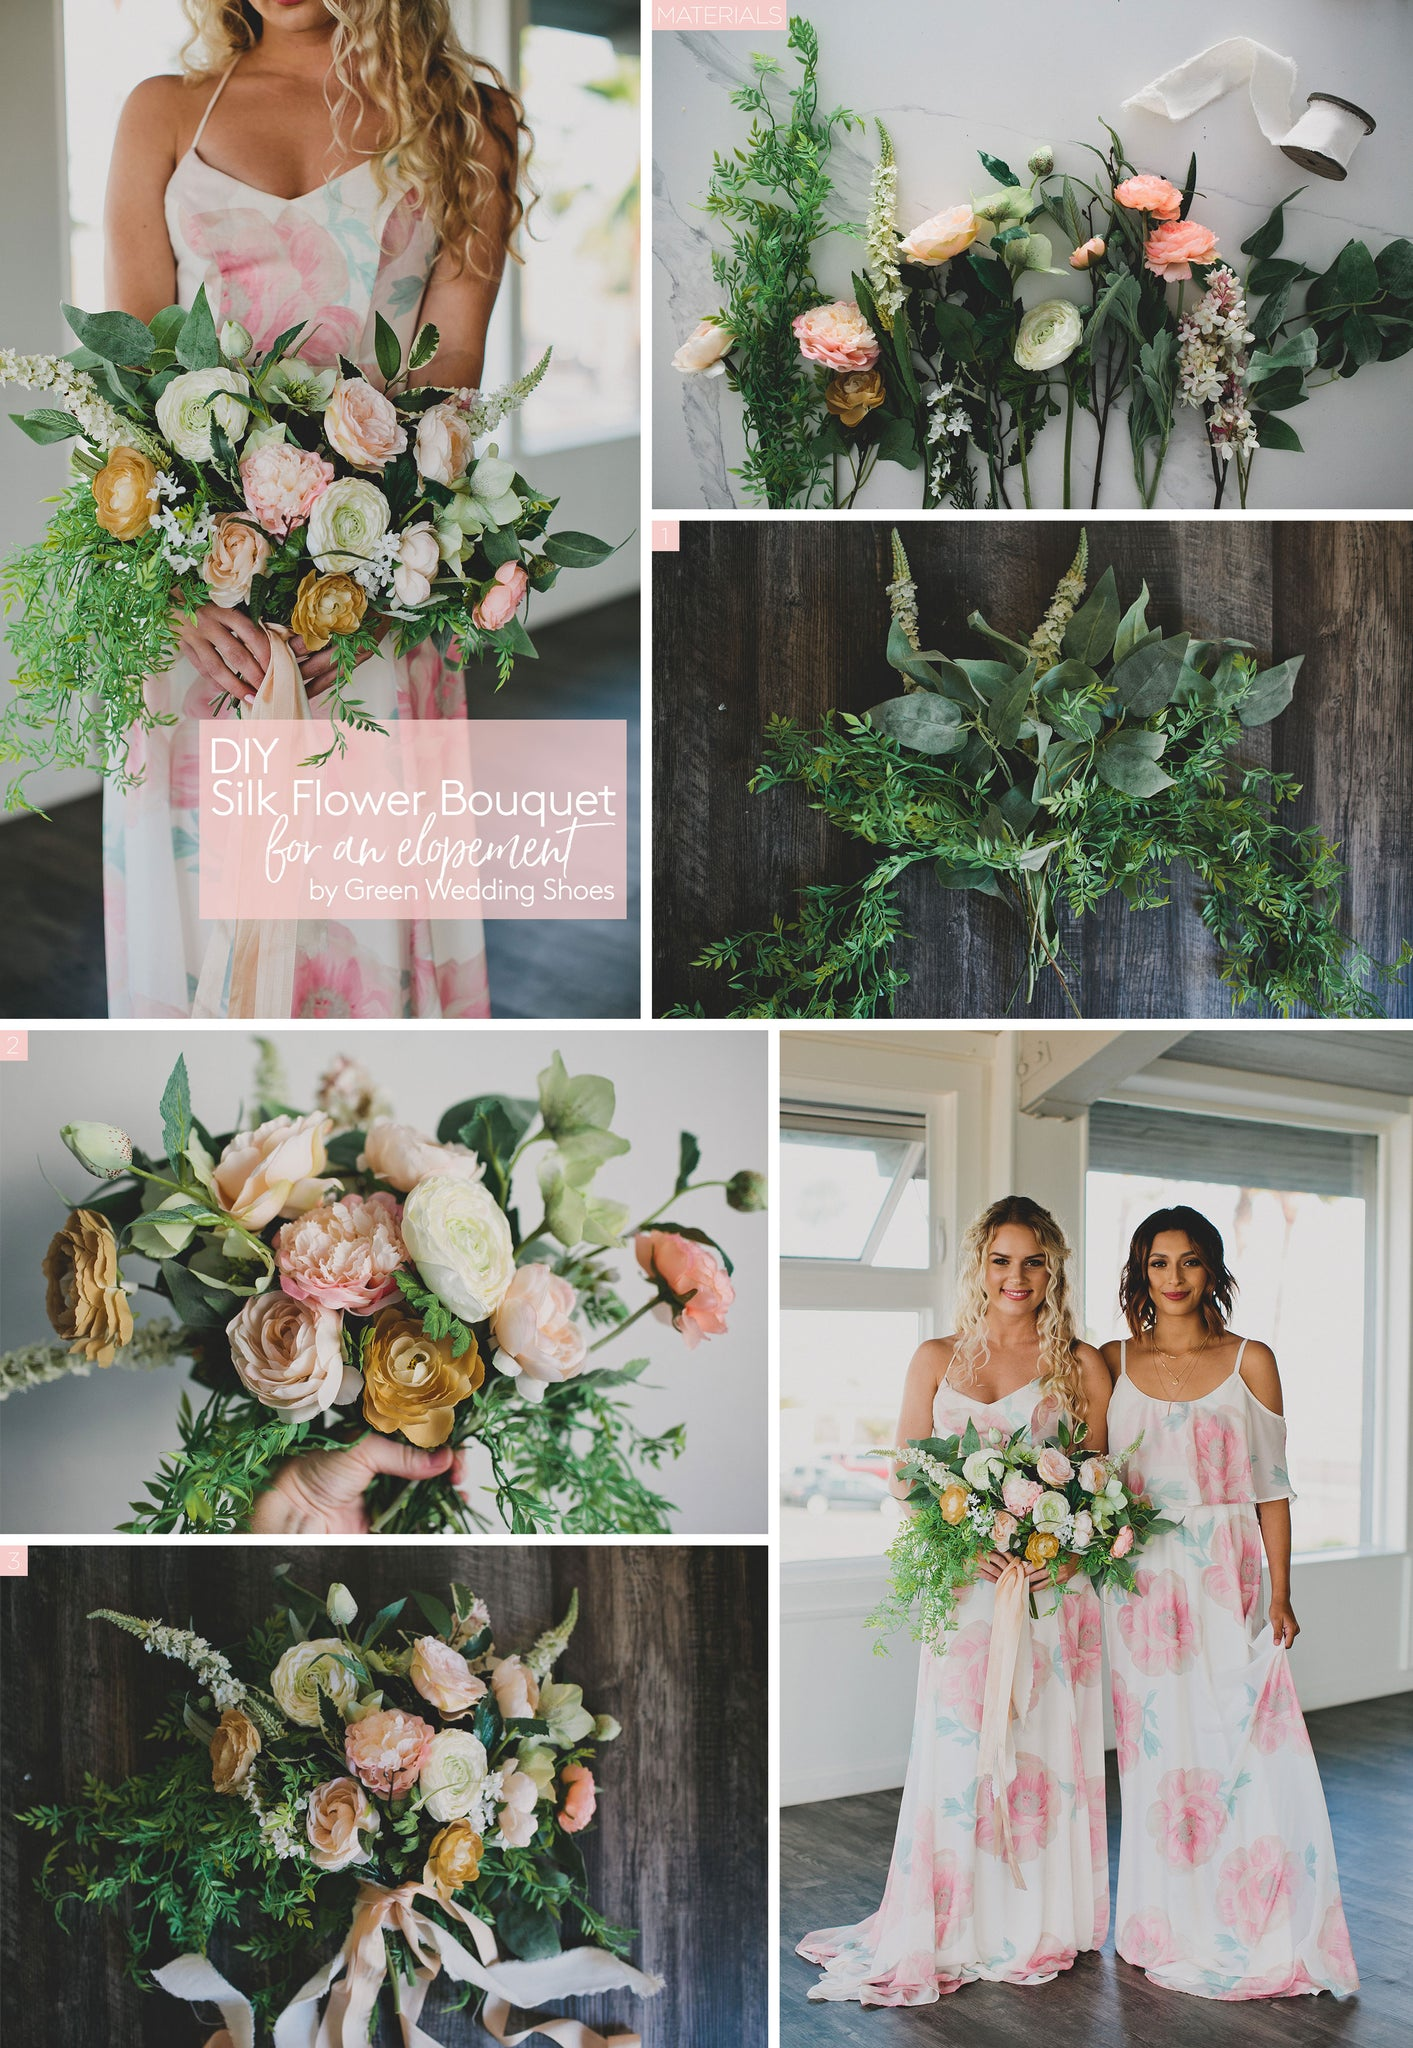 Diy Silk Flower Bouquet For An Elopement Park Weddings Afloral